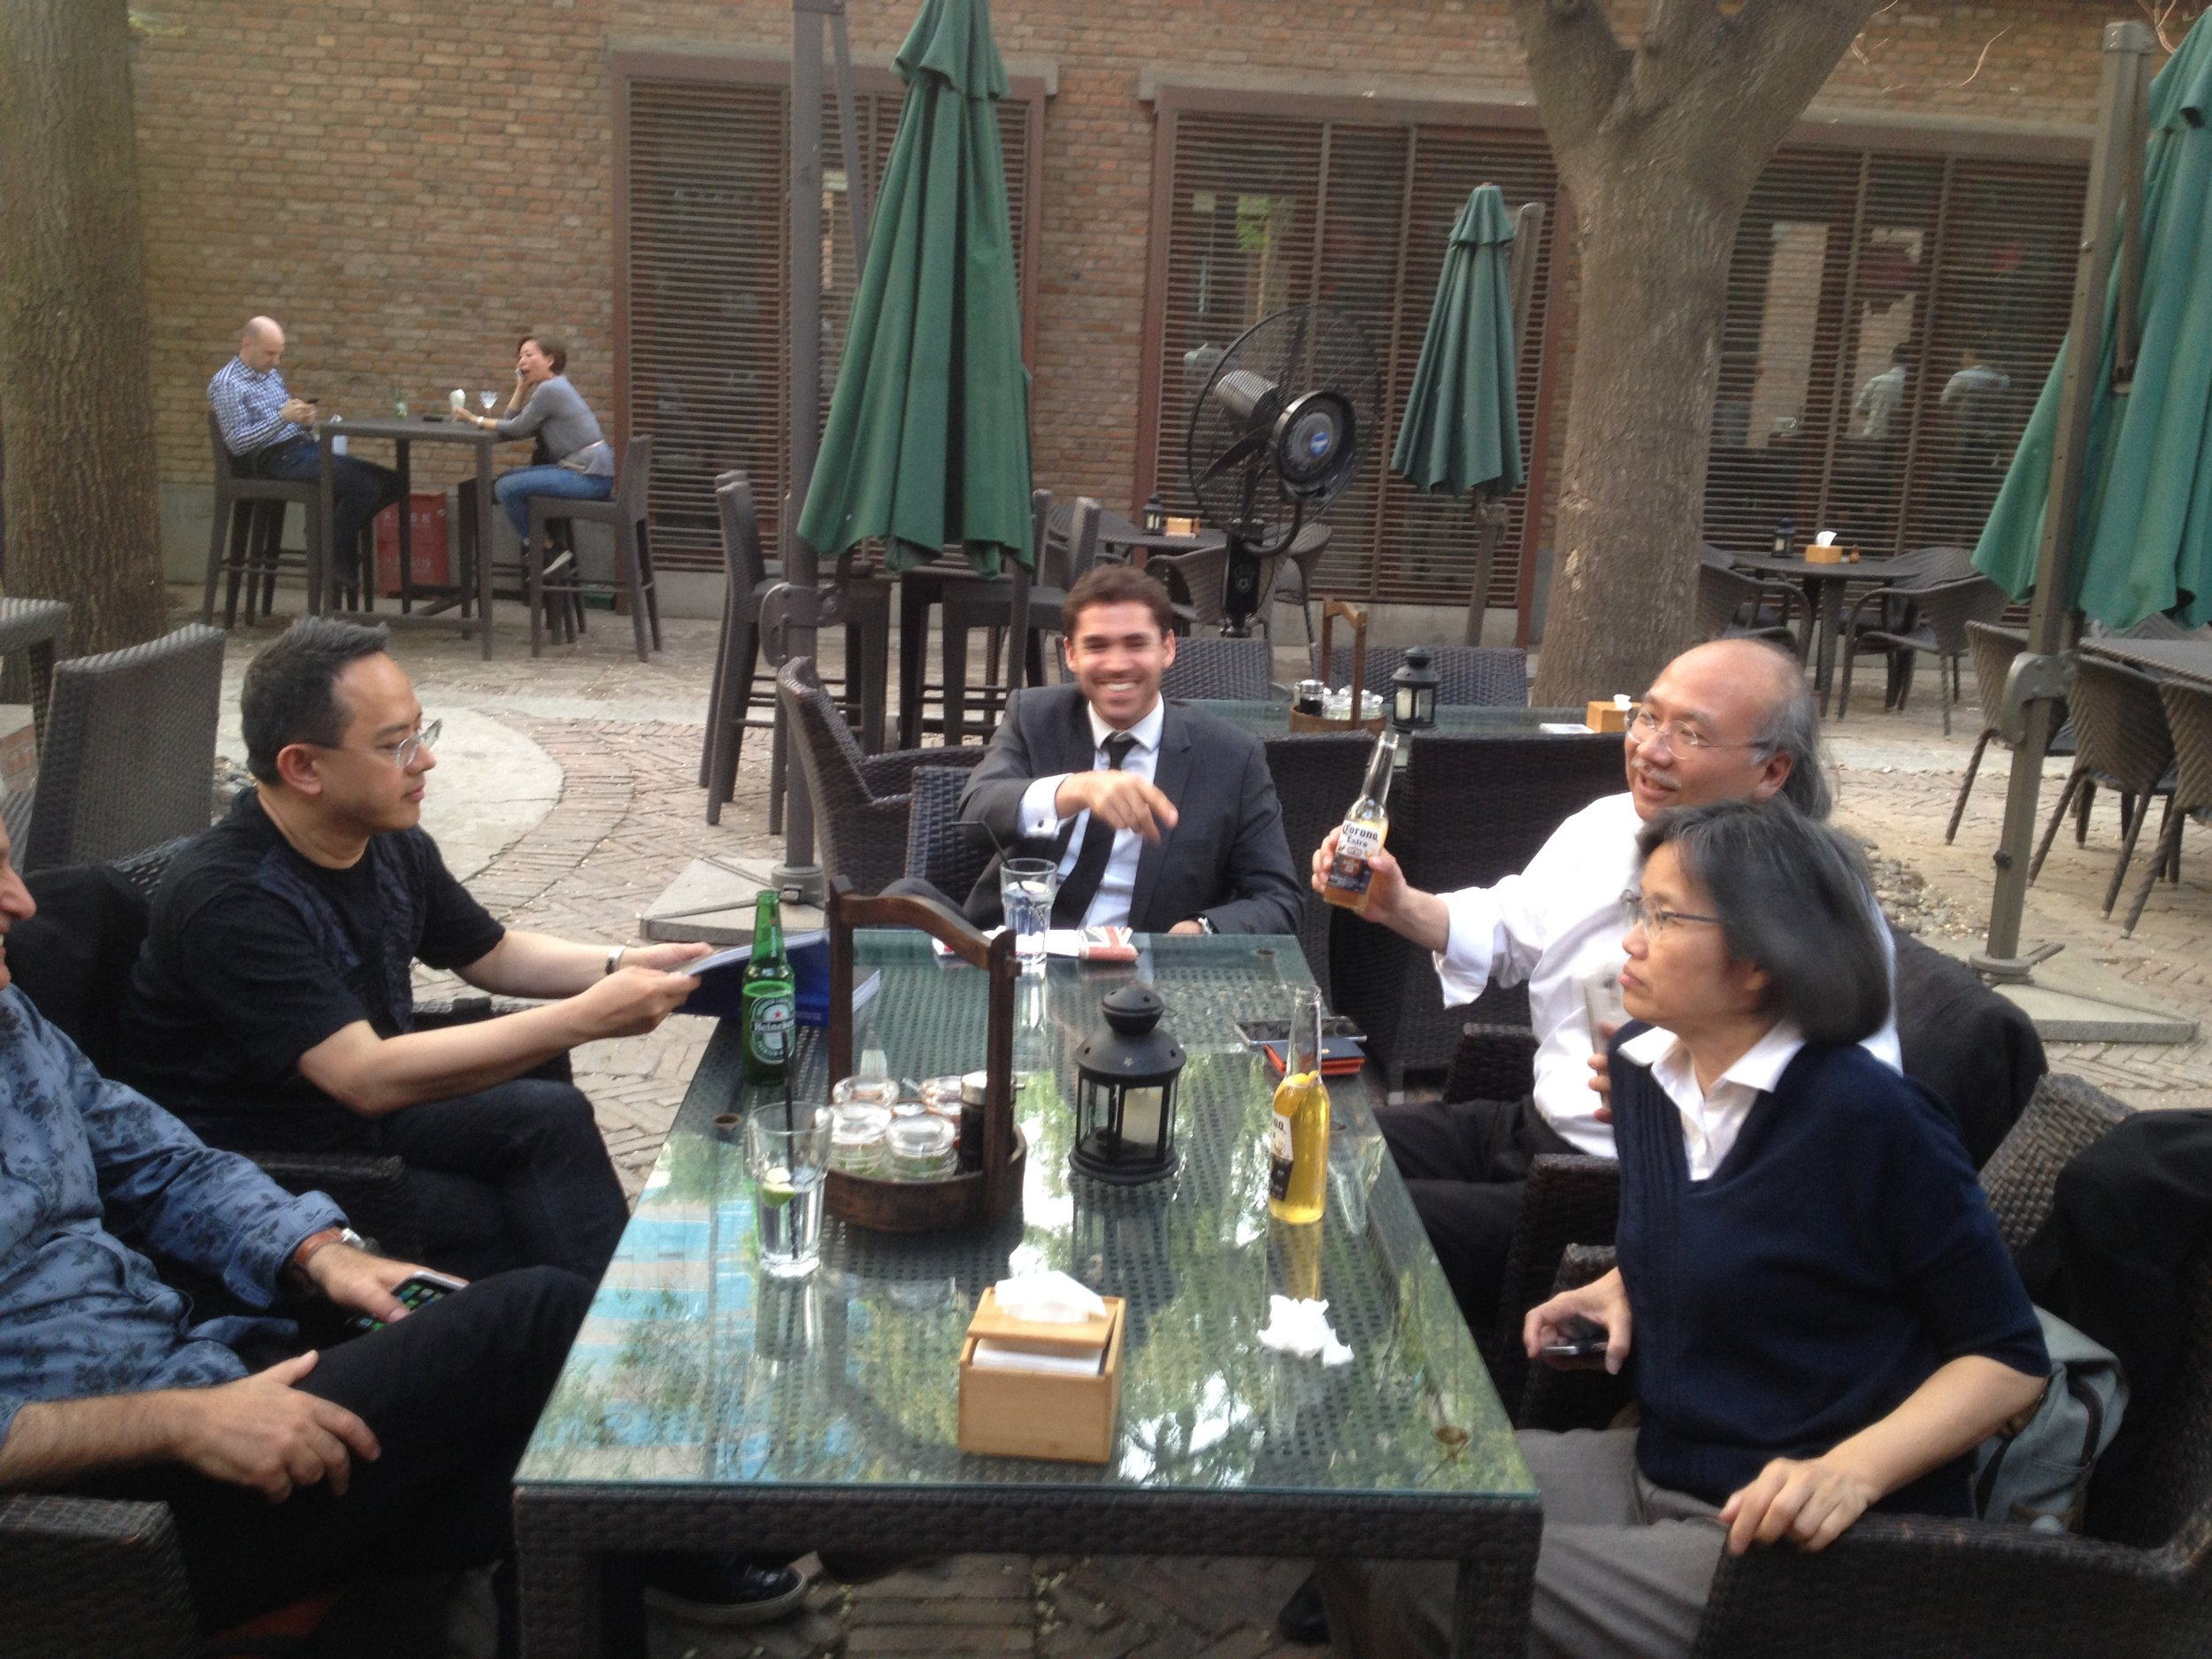 All CEO's of architecture firm, relaxing after conference.